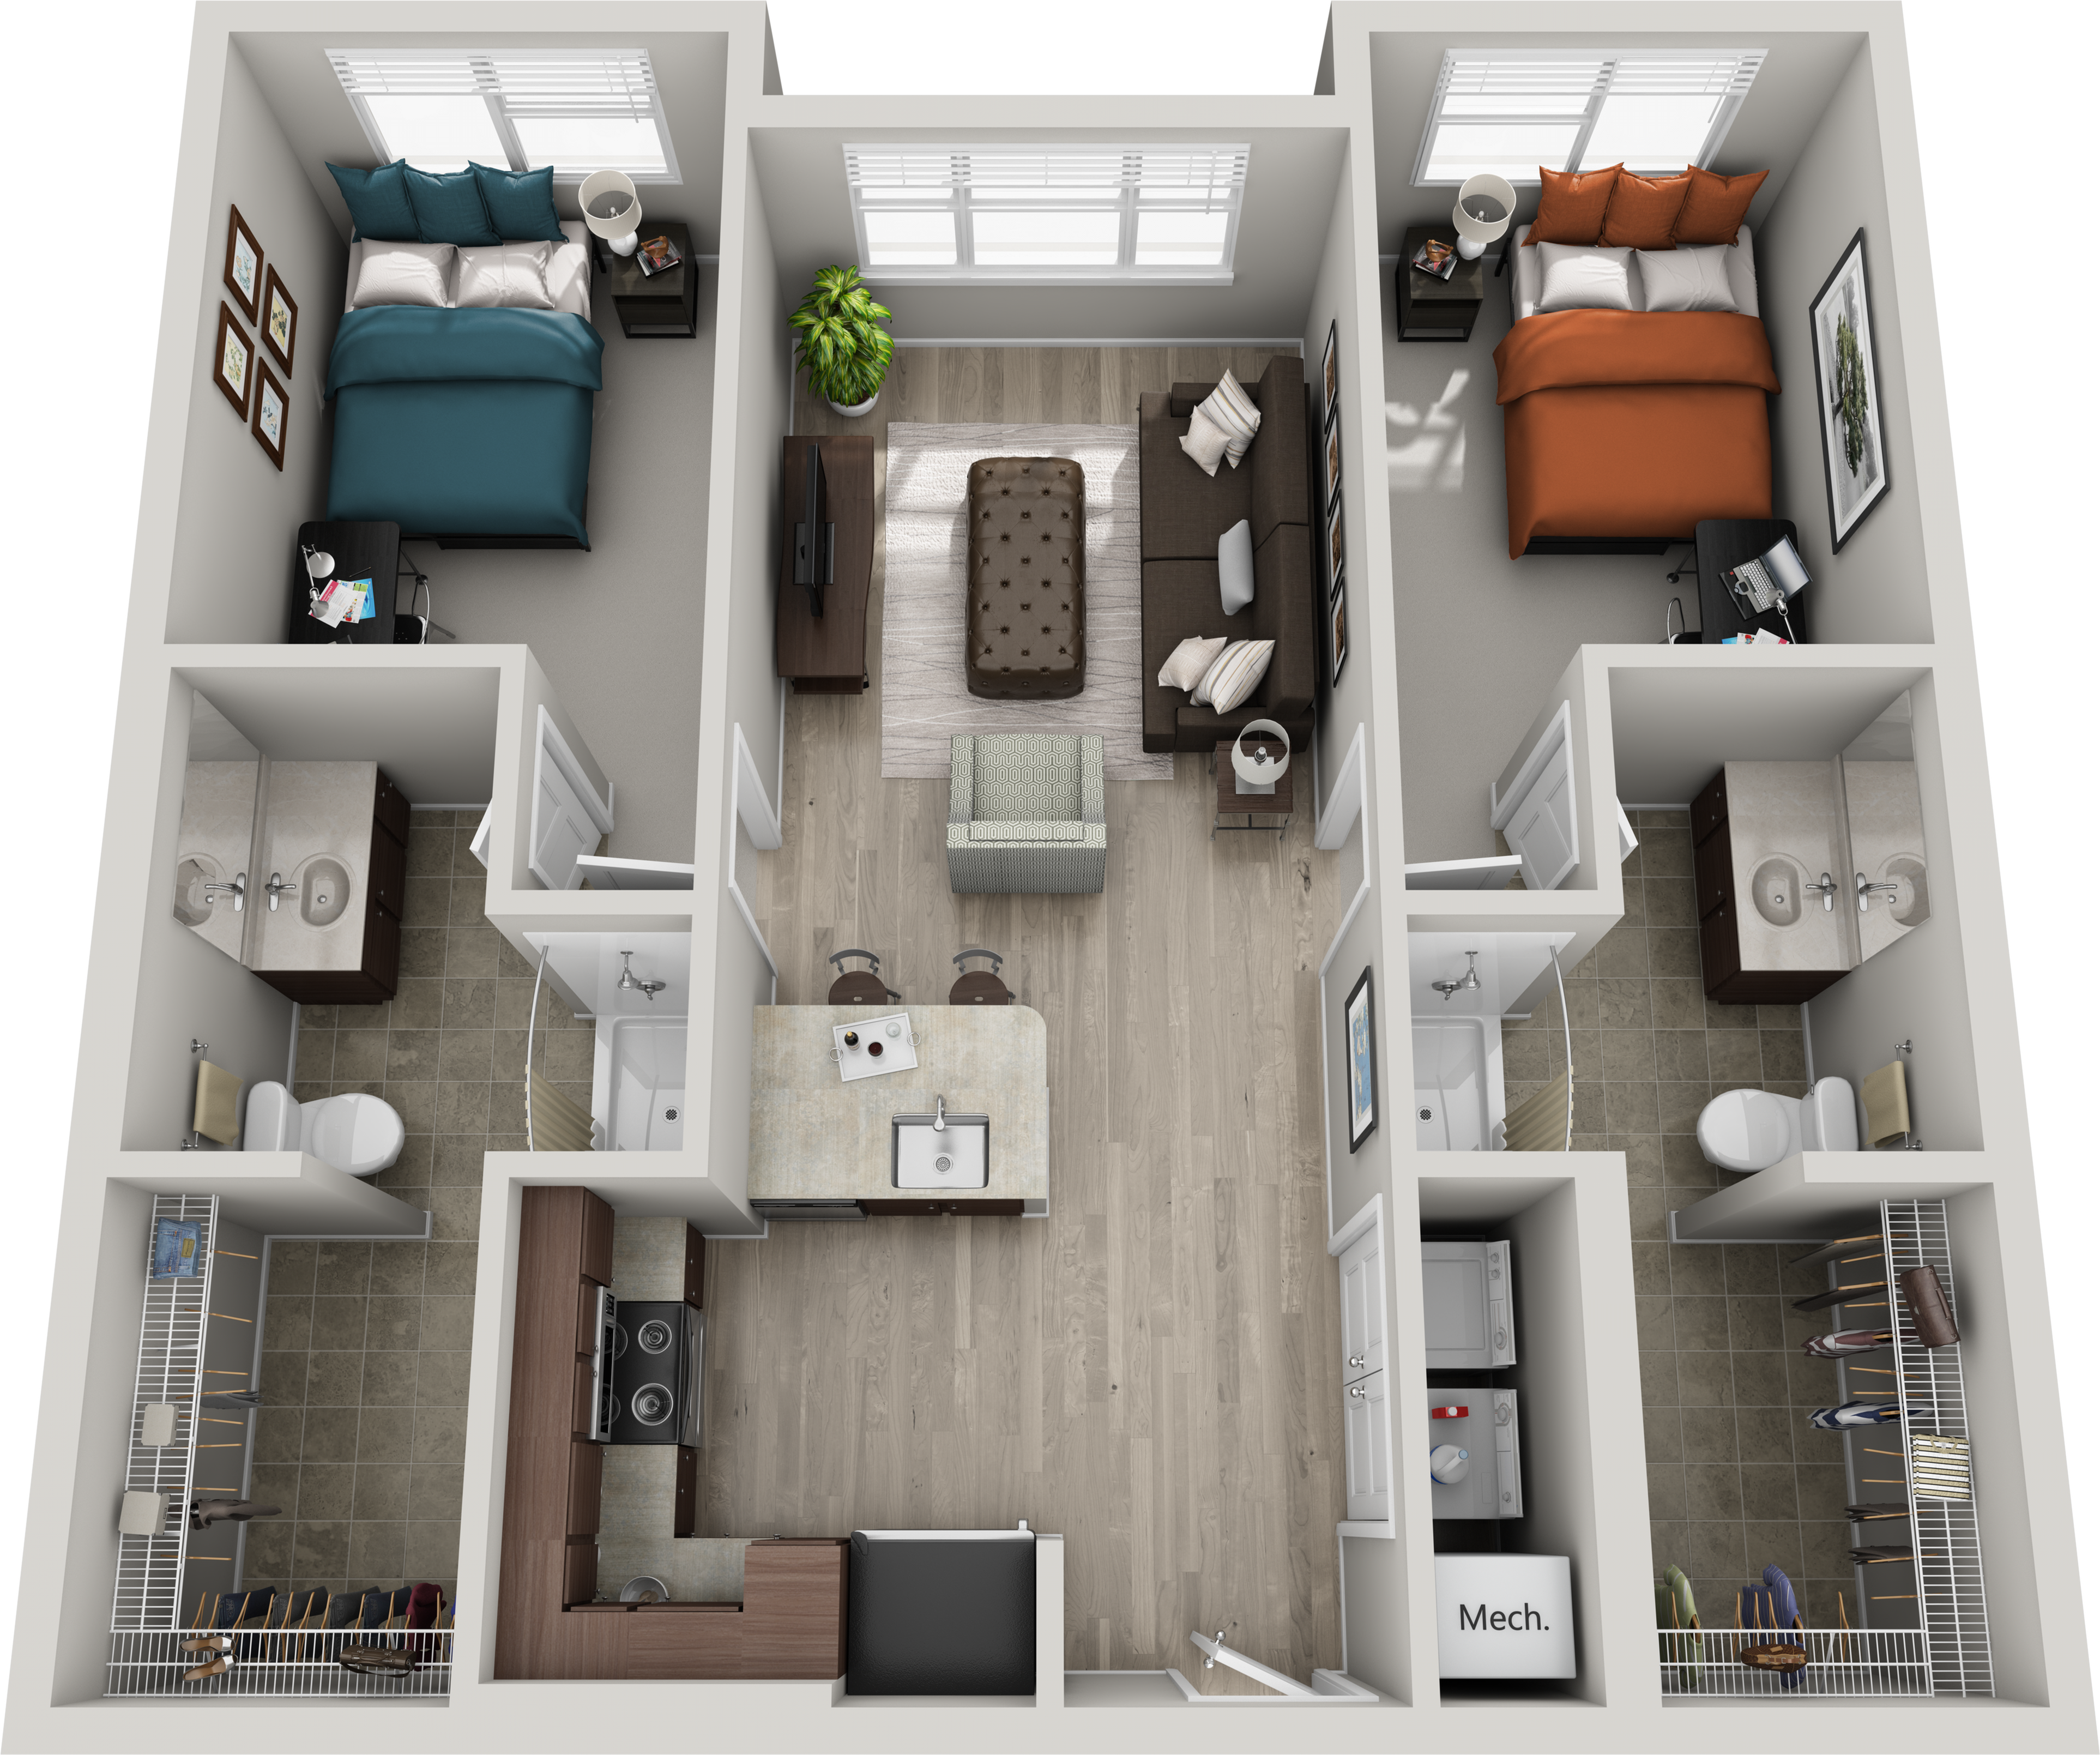 2br 2ba Shelby Is A 2 Bedroom Apartment Layout Option At 303 Flats This 904 00 Sqft Floor Plan Small Apartment Layout Apartment Layout Small Apartment Plans